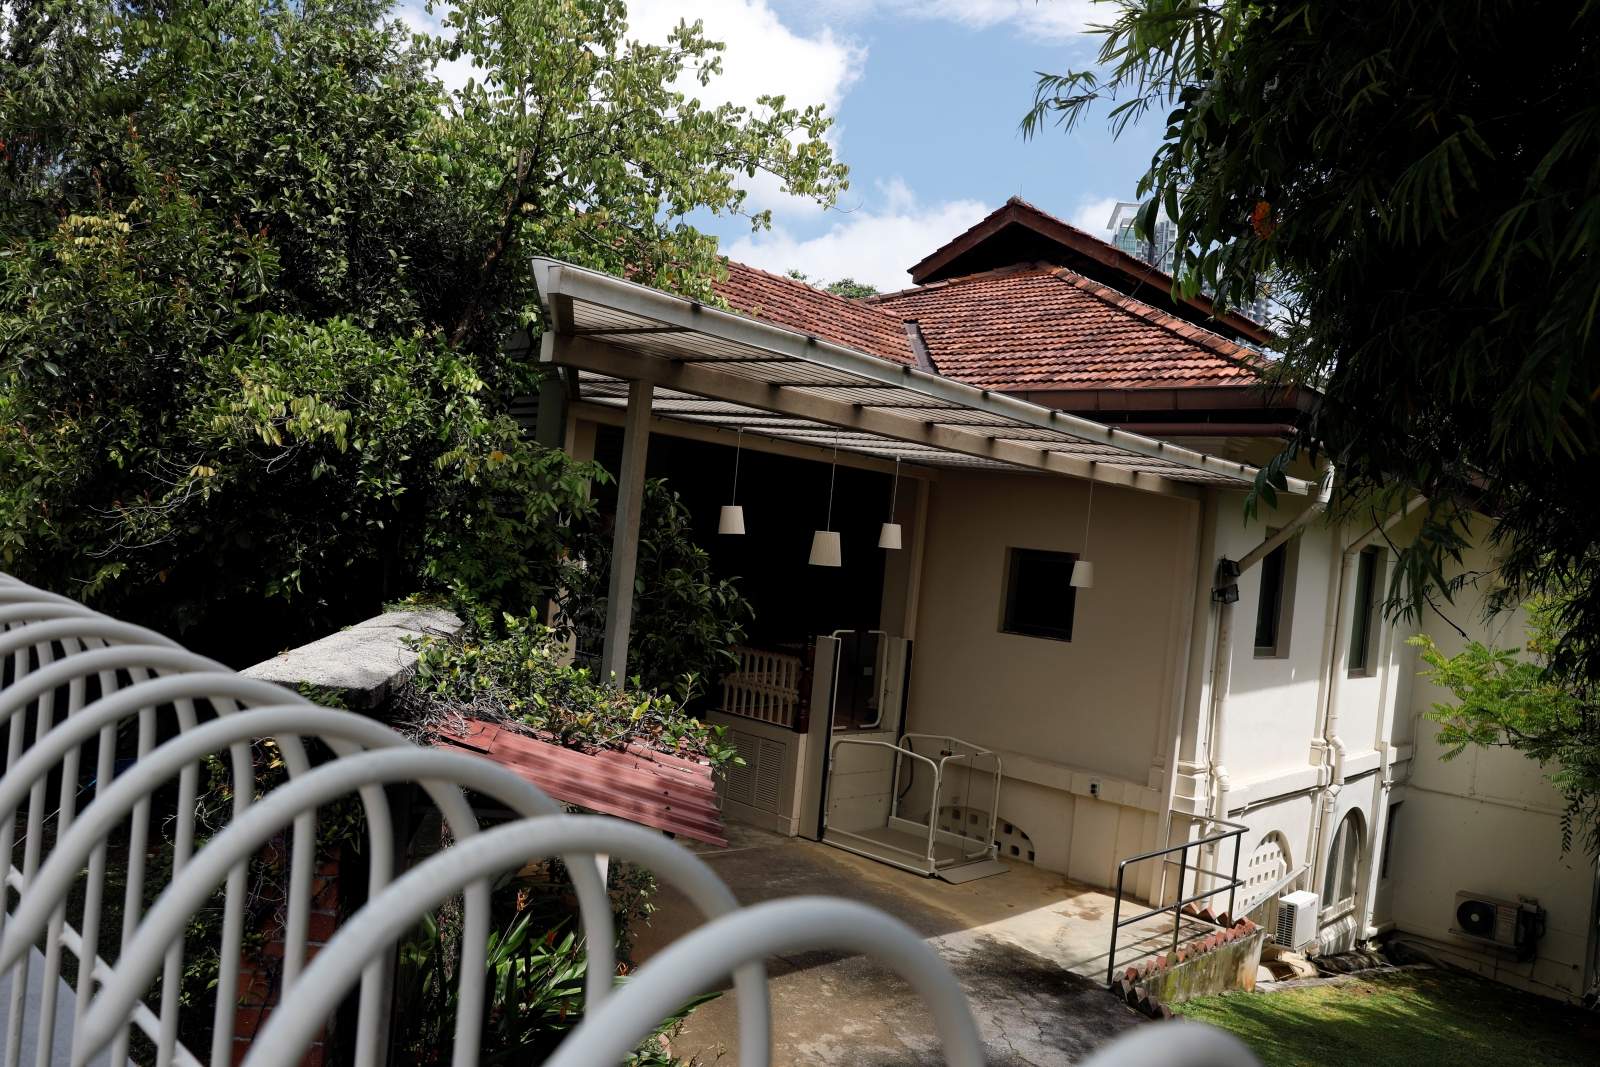 Lee Kuan Yew's bungalow at 38 Oxley Road